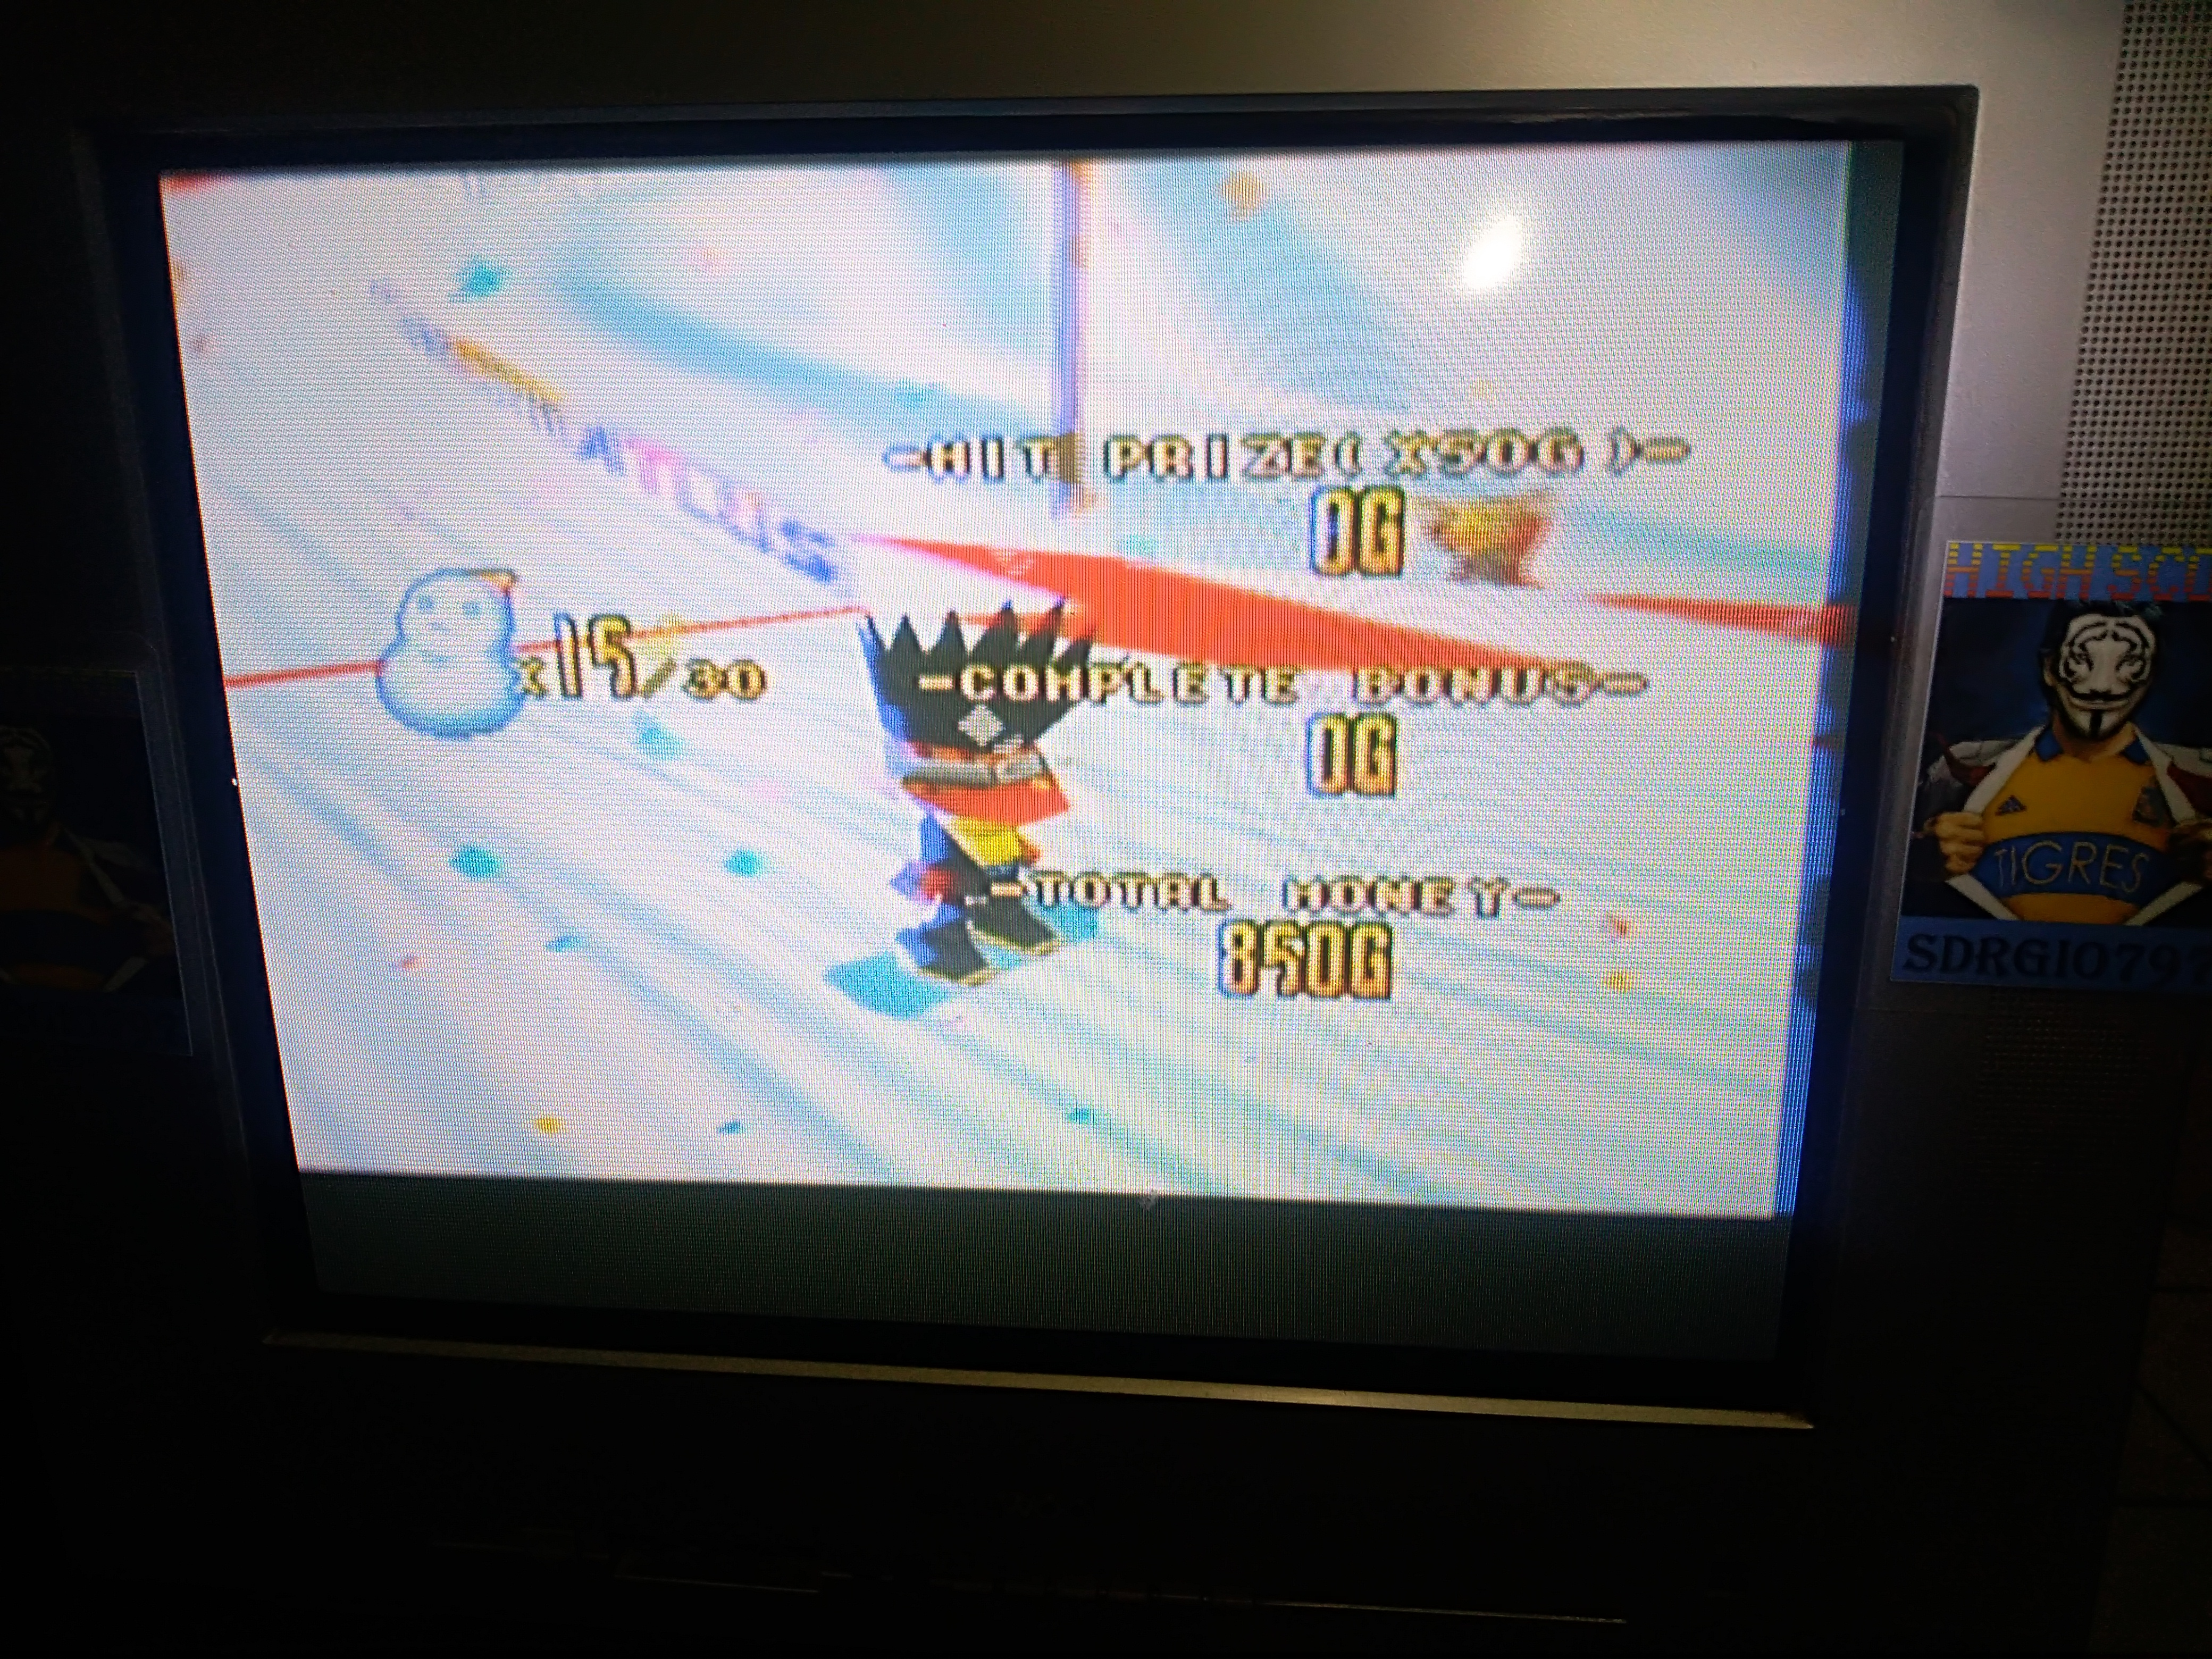 Sdrgio797: Snowboard Kids: Shot Game [Rookie MT.] (N64 Emulated) 15 points on 2020-08-09 00:44:38